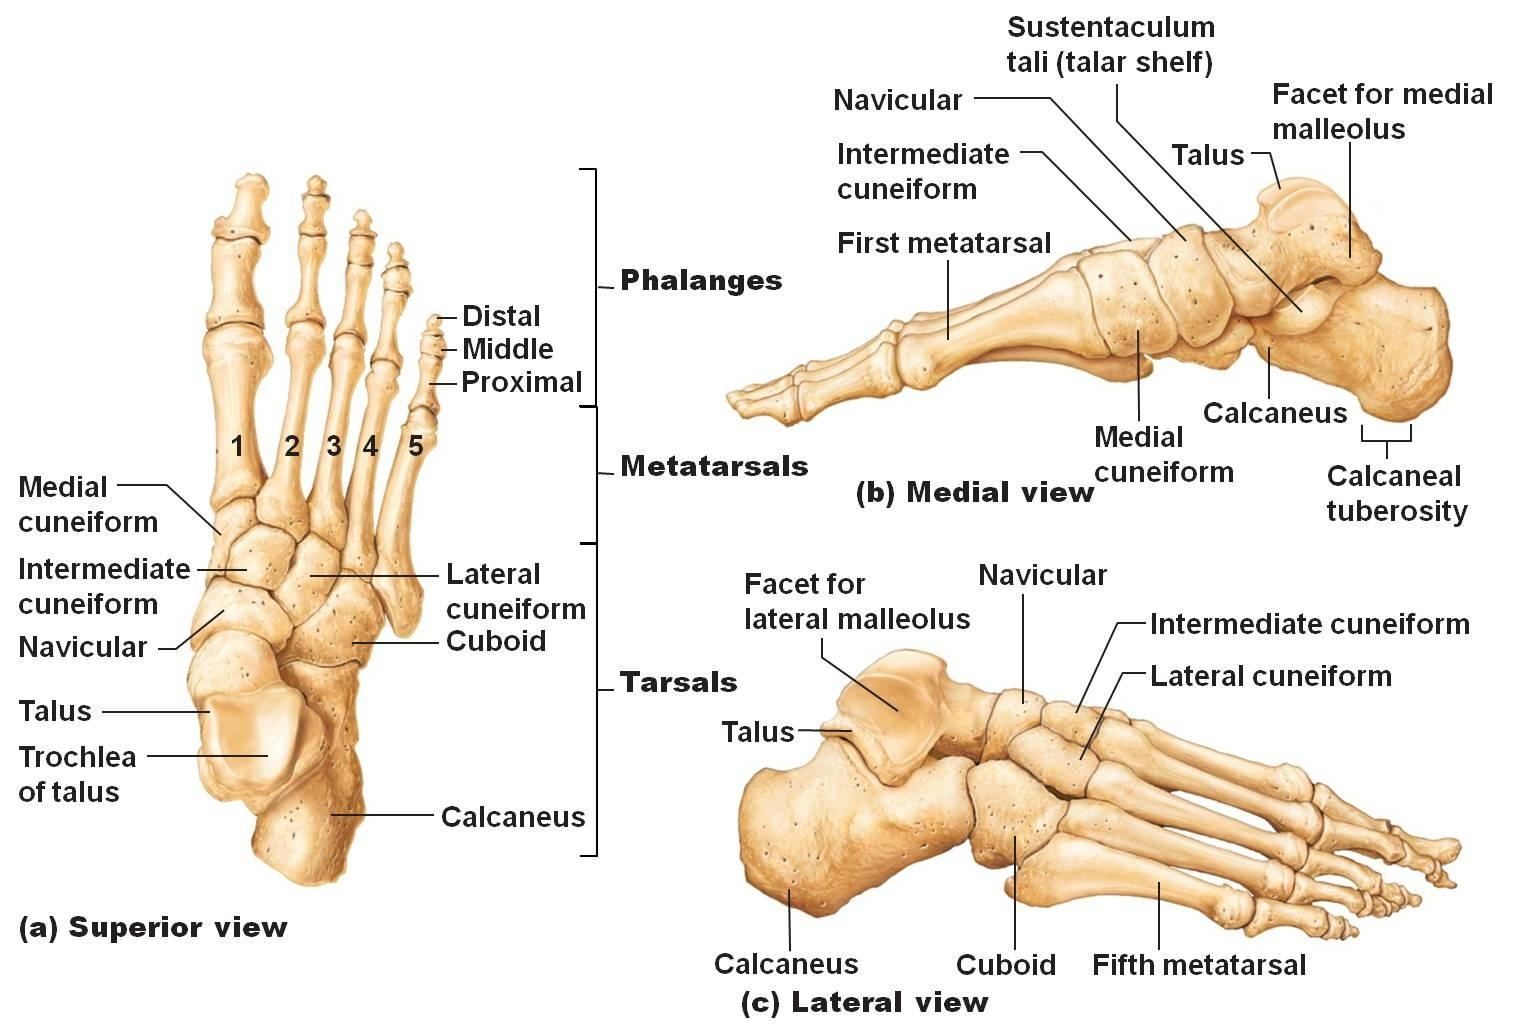 emDOCs.net – Emergency Medicine EducationCORE EM: Lisfranc Injuries ...